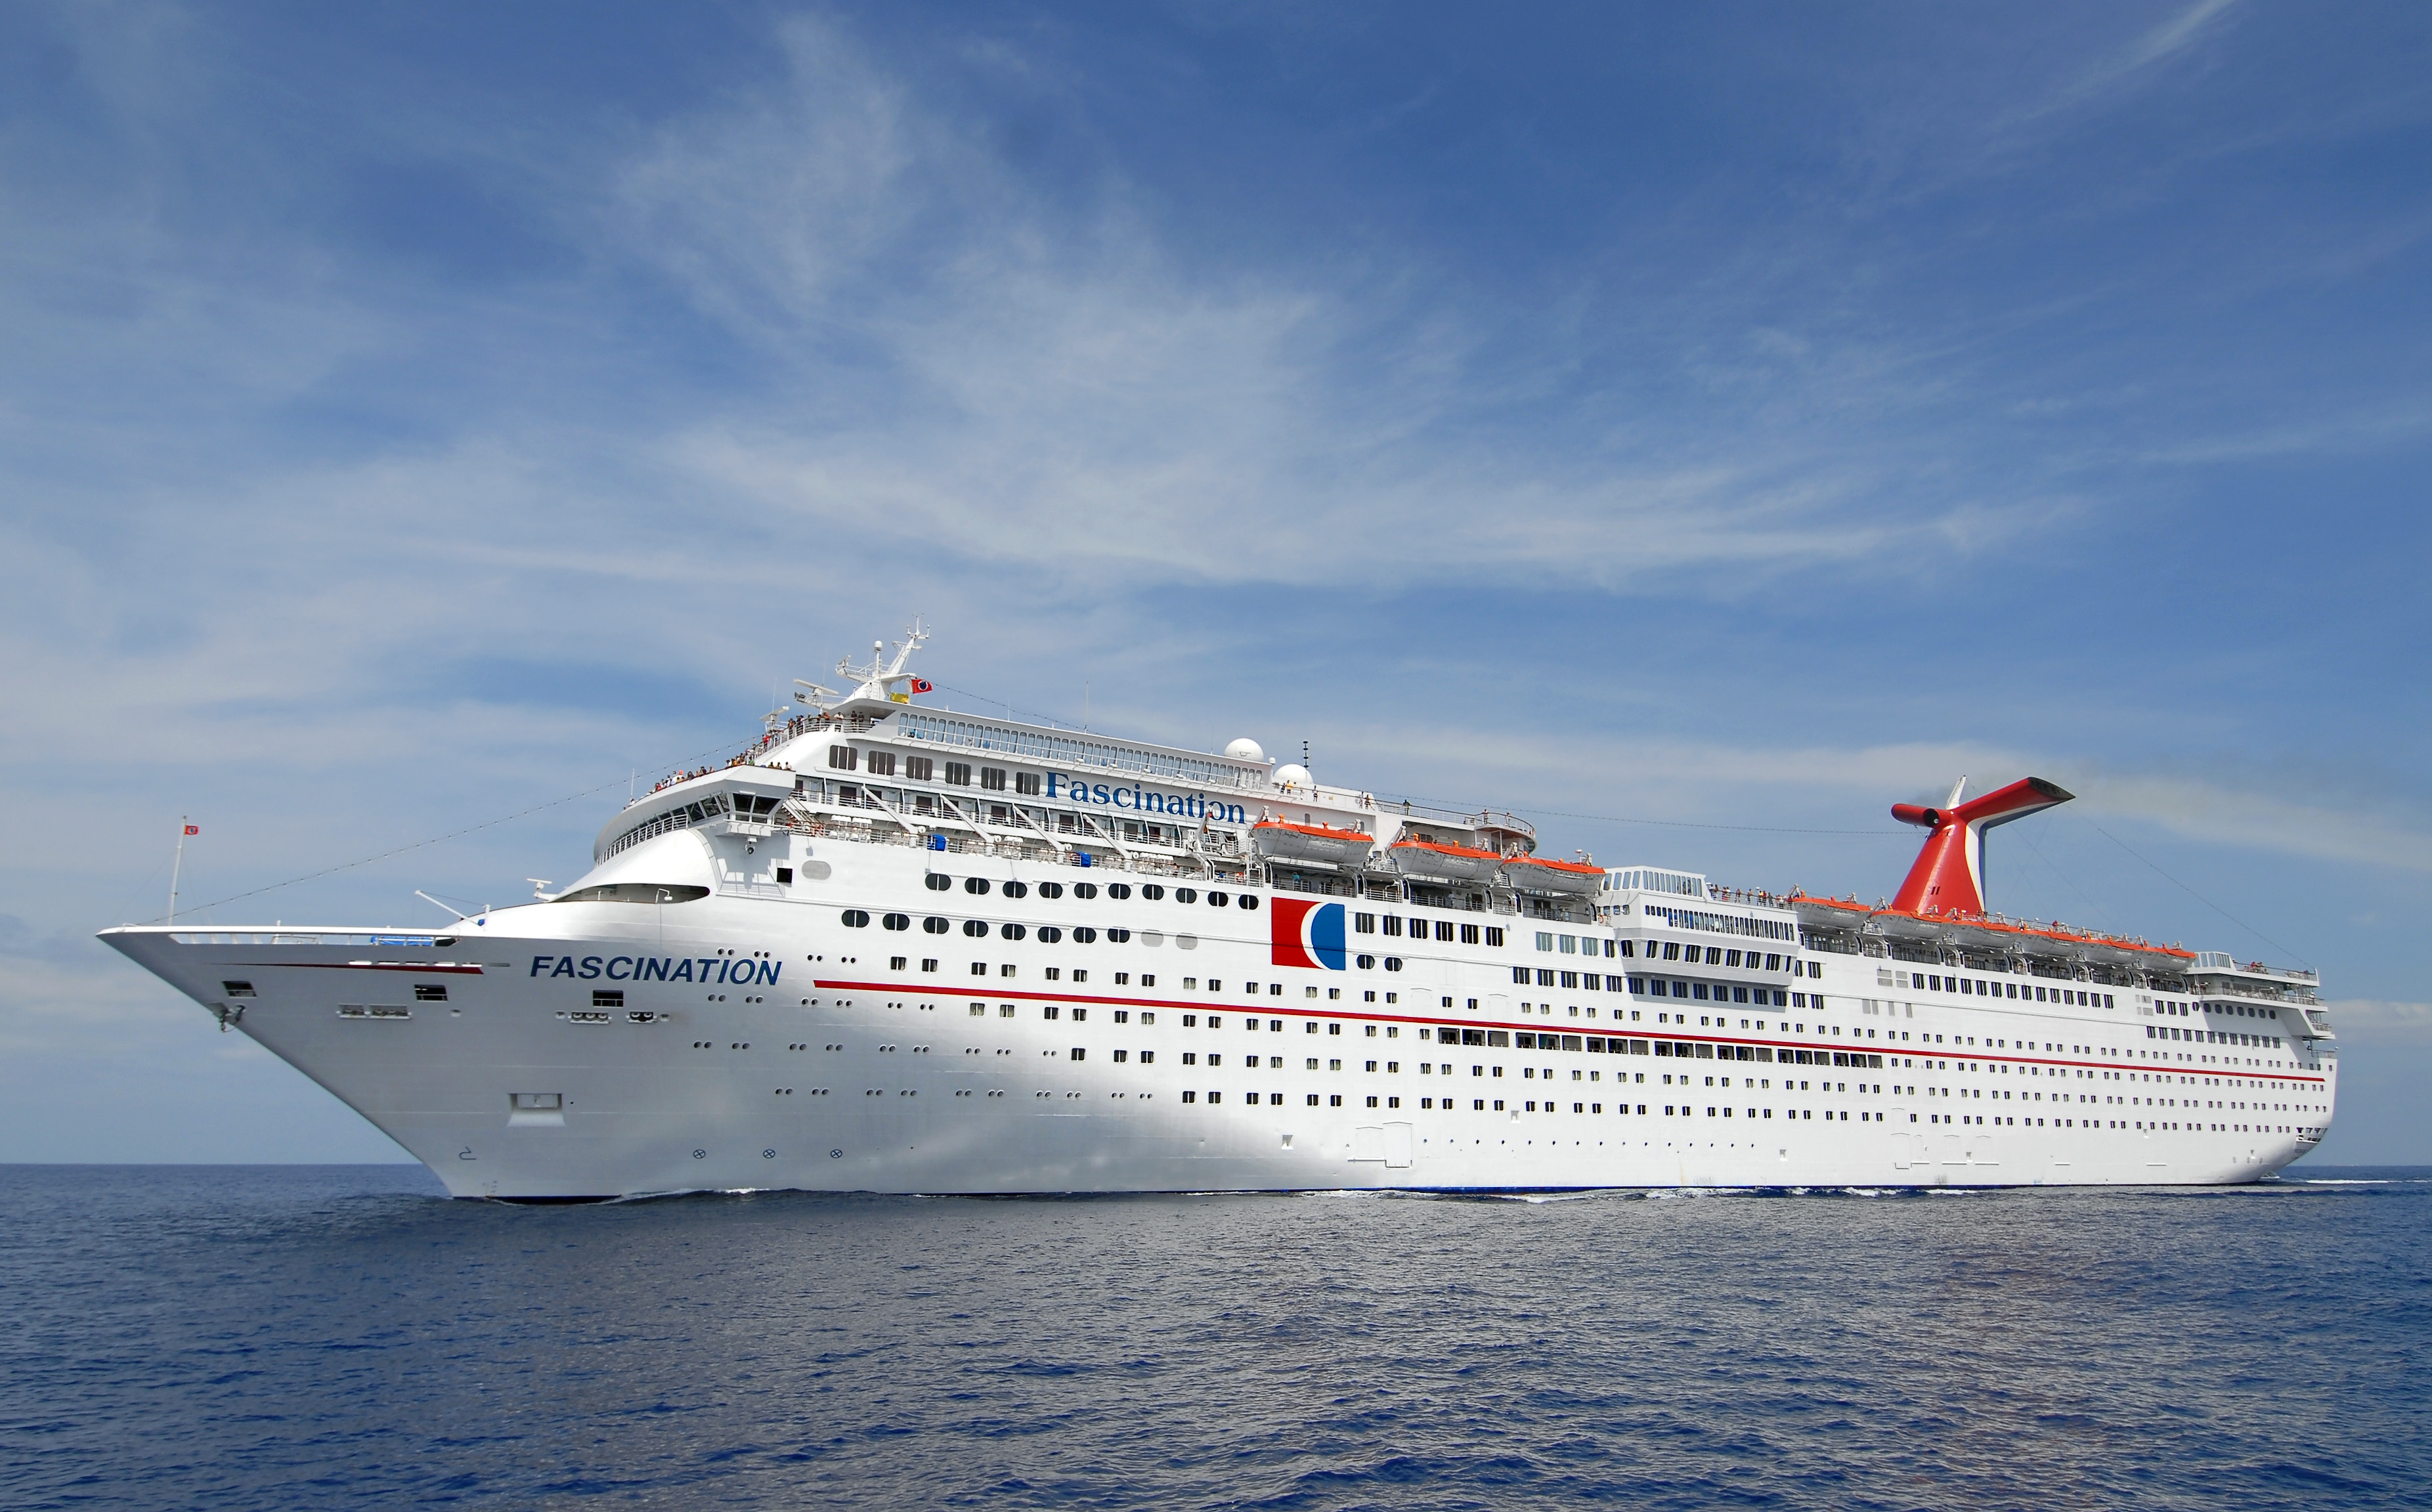 Statement Regarding Carnival Fascination